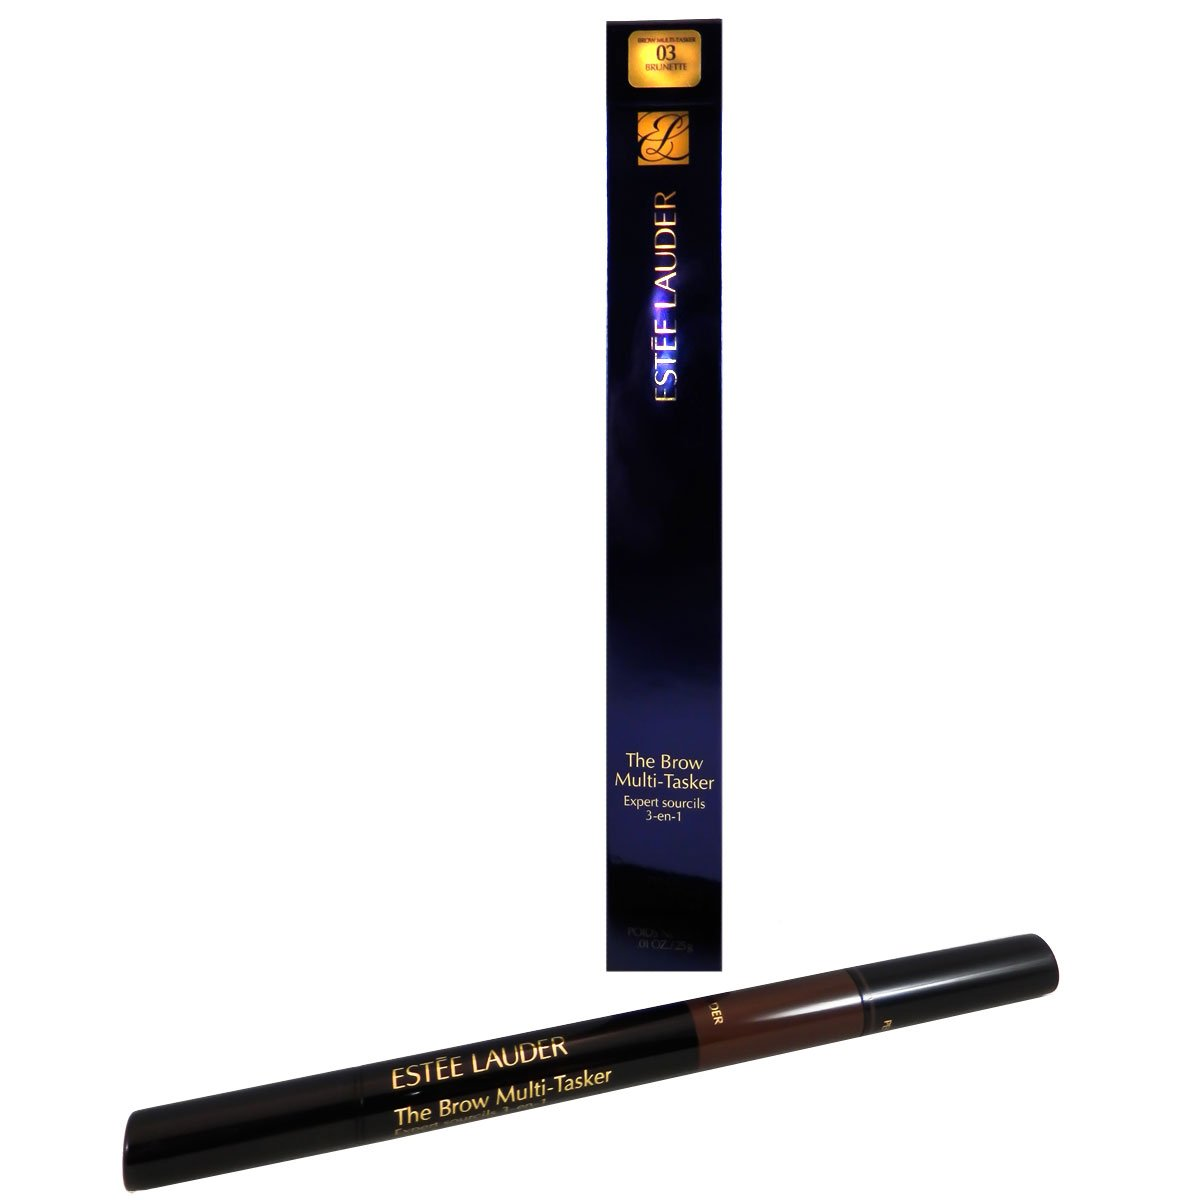 Estee Lauder The Brow Multitasker 3-In-1 Set, No. 03 Brunette, 0.017 Ounce by Estee Lauder